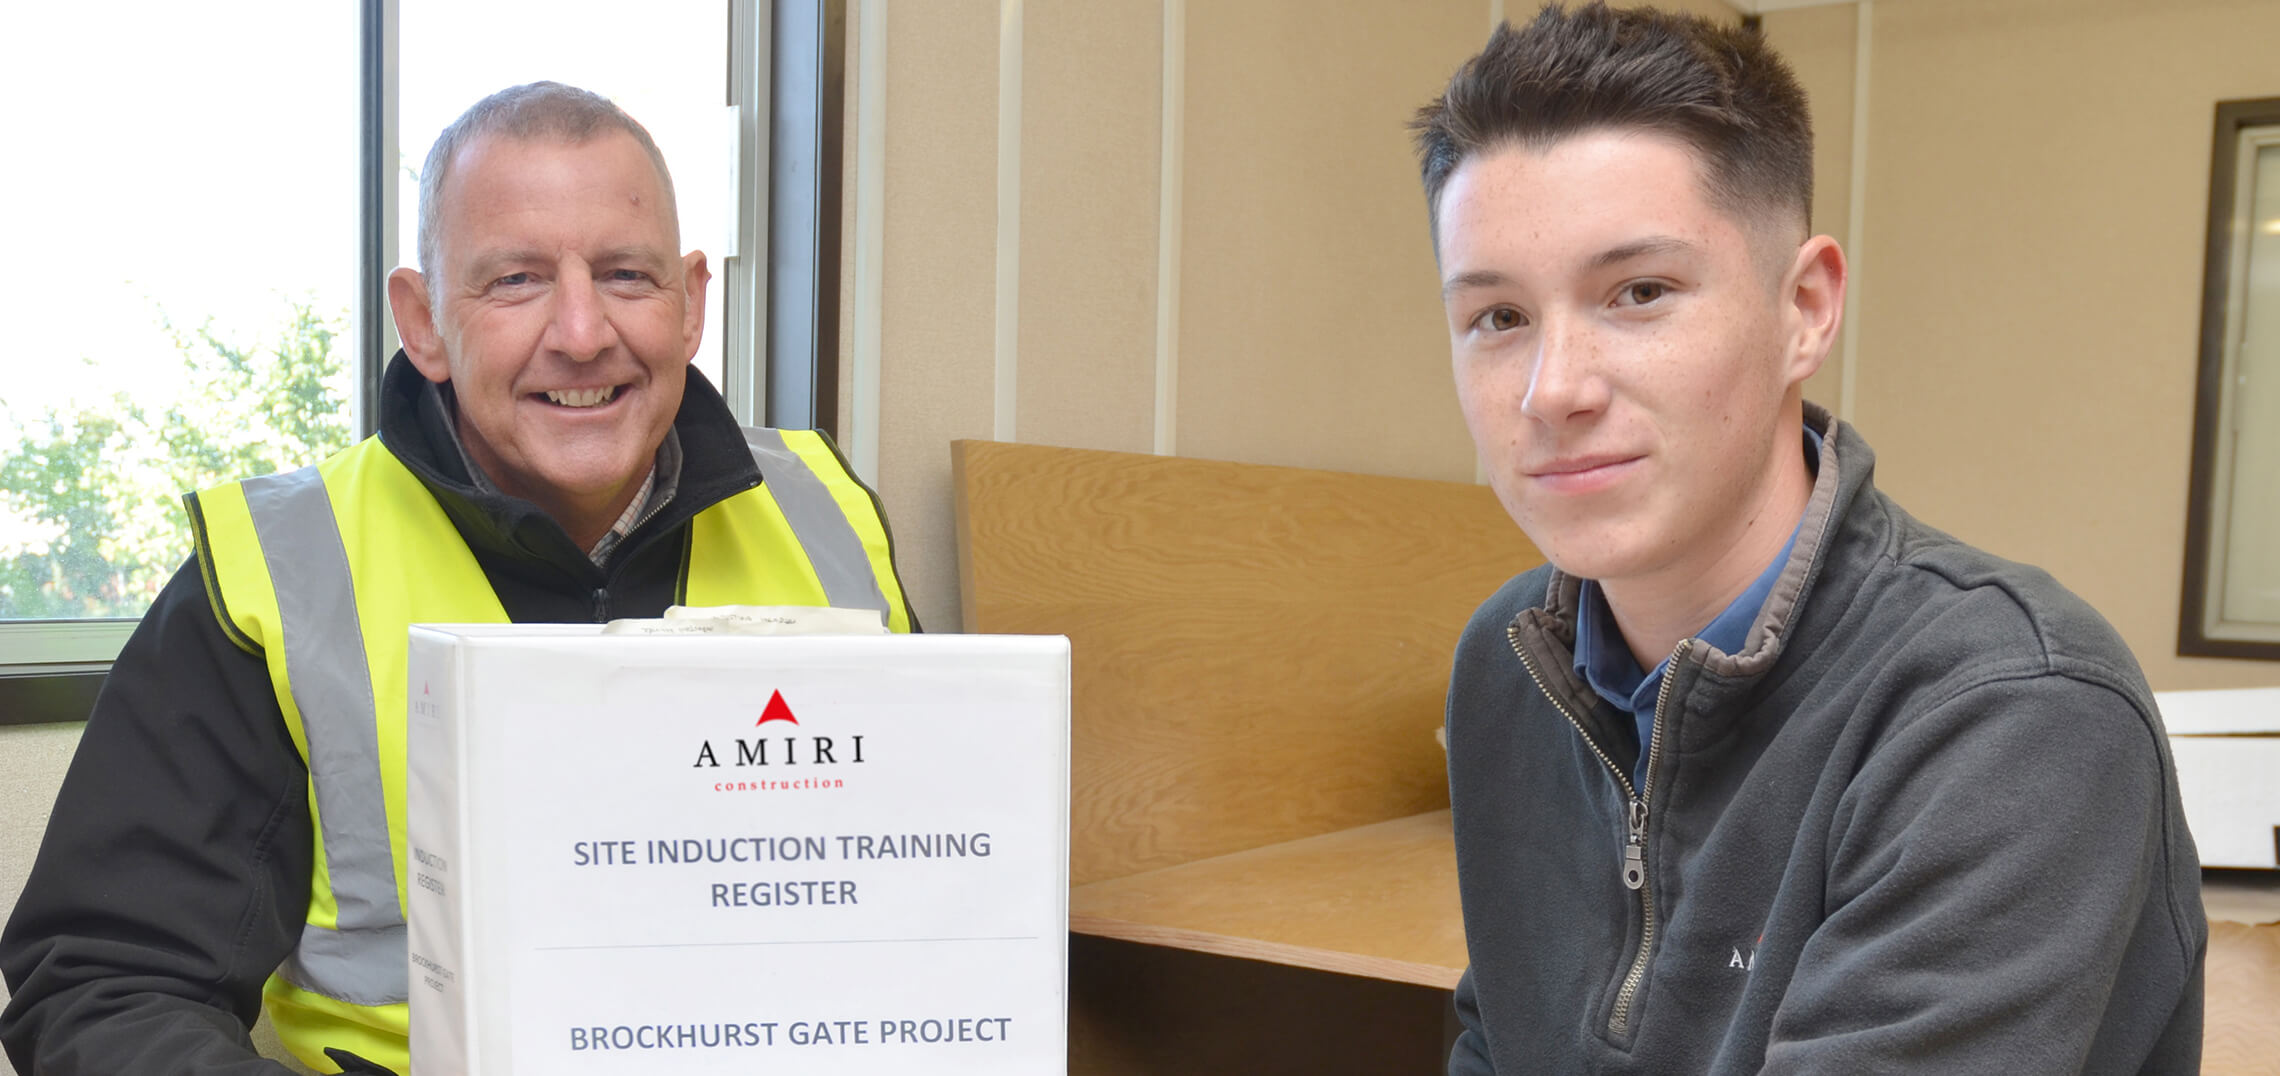 Dan tackles Construction Management training